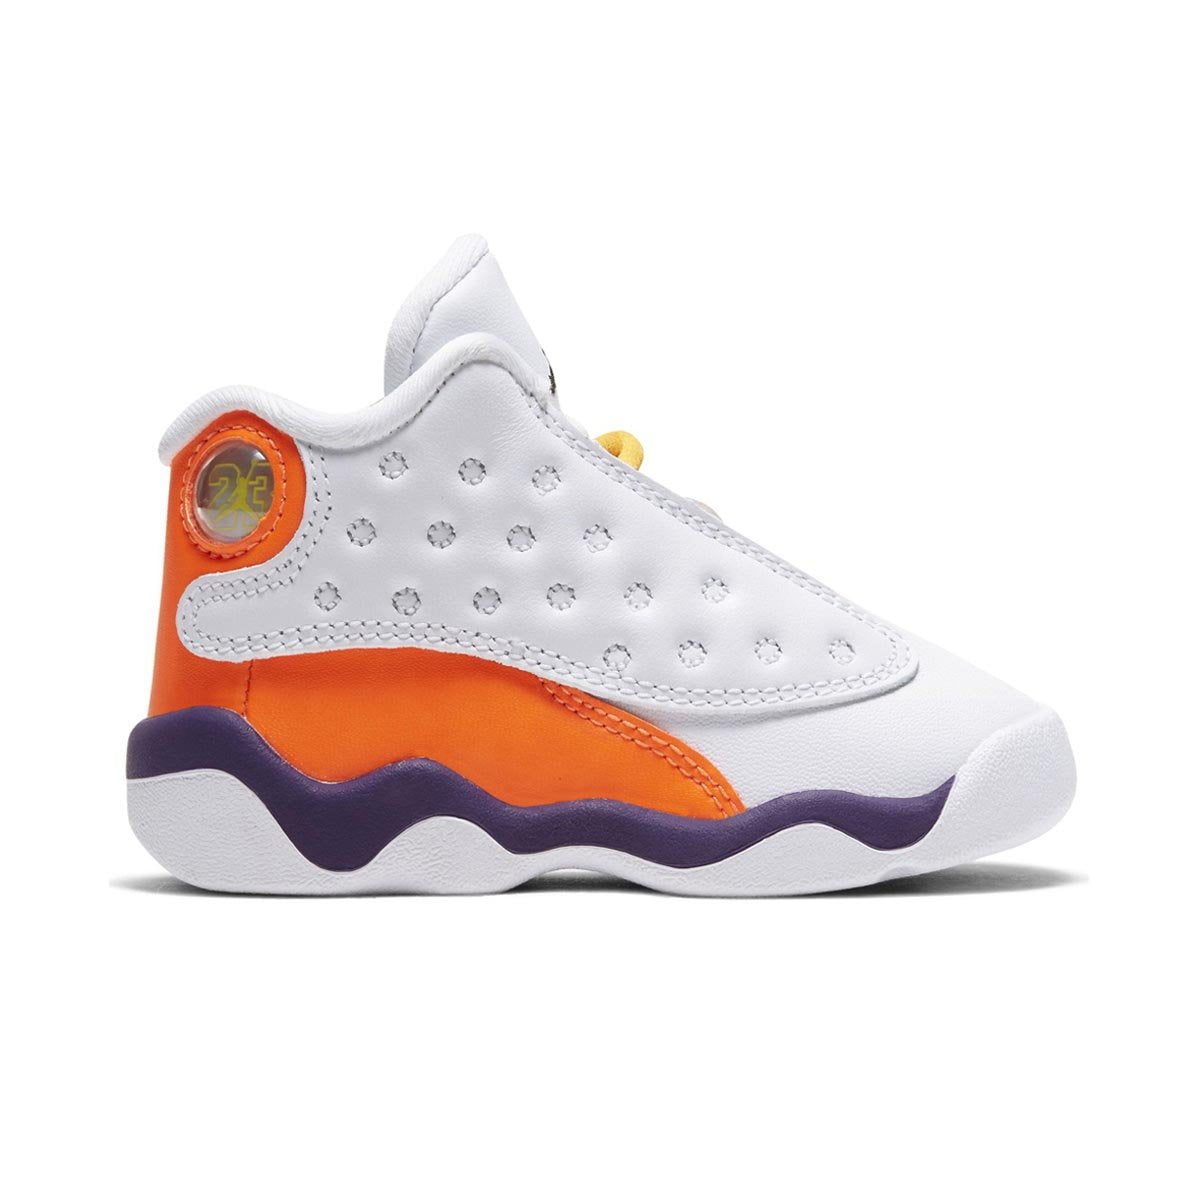 Toddler Jordan 13 Retro